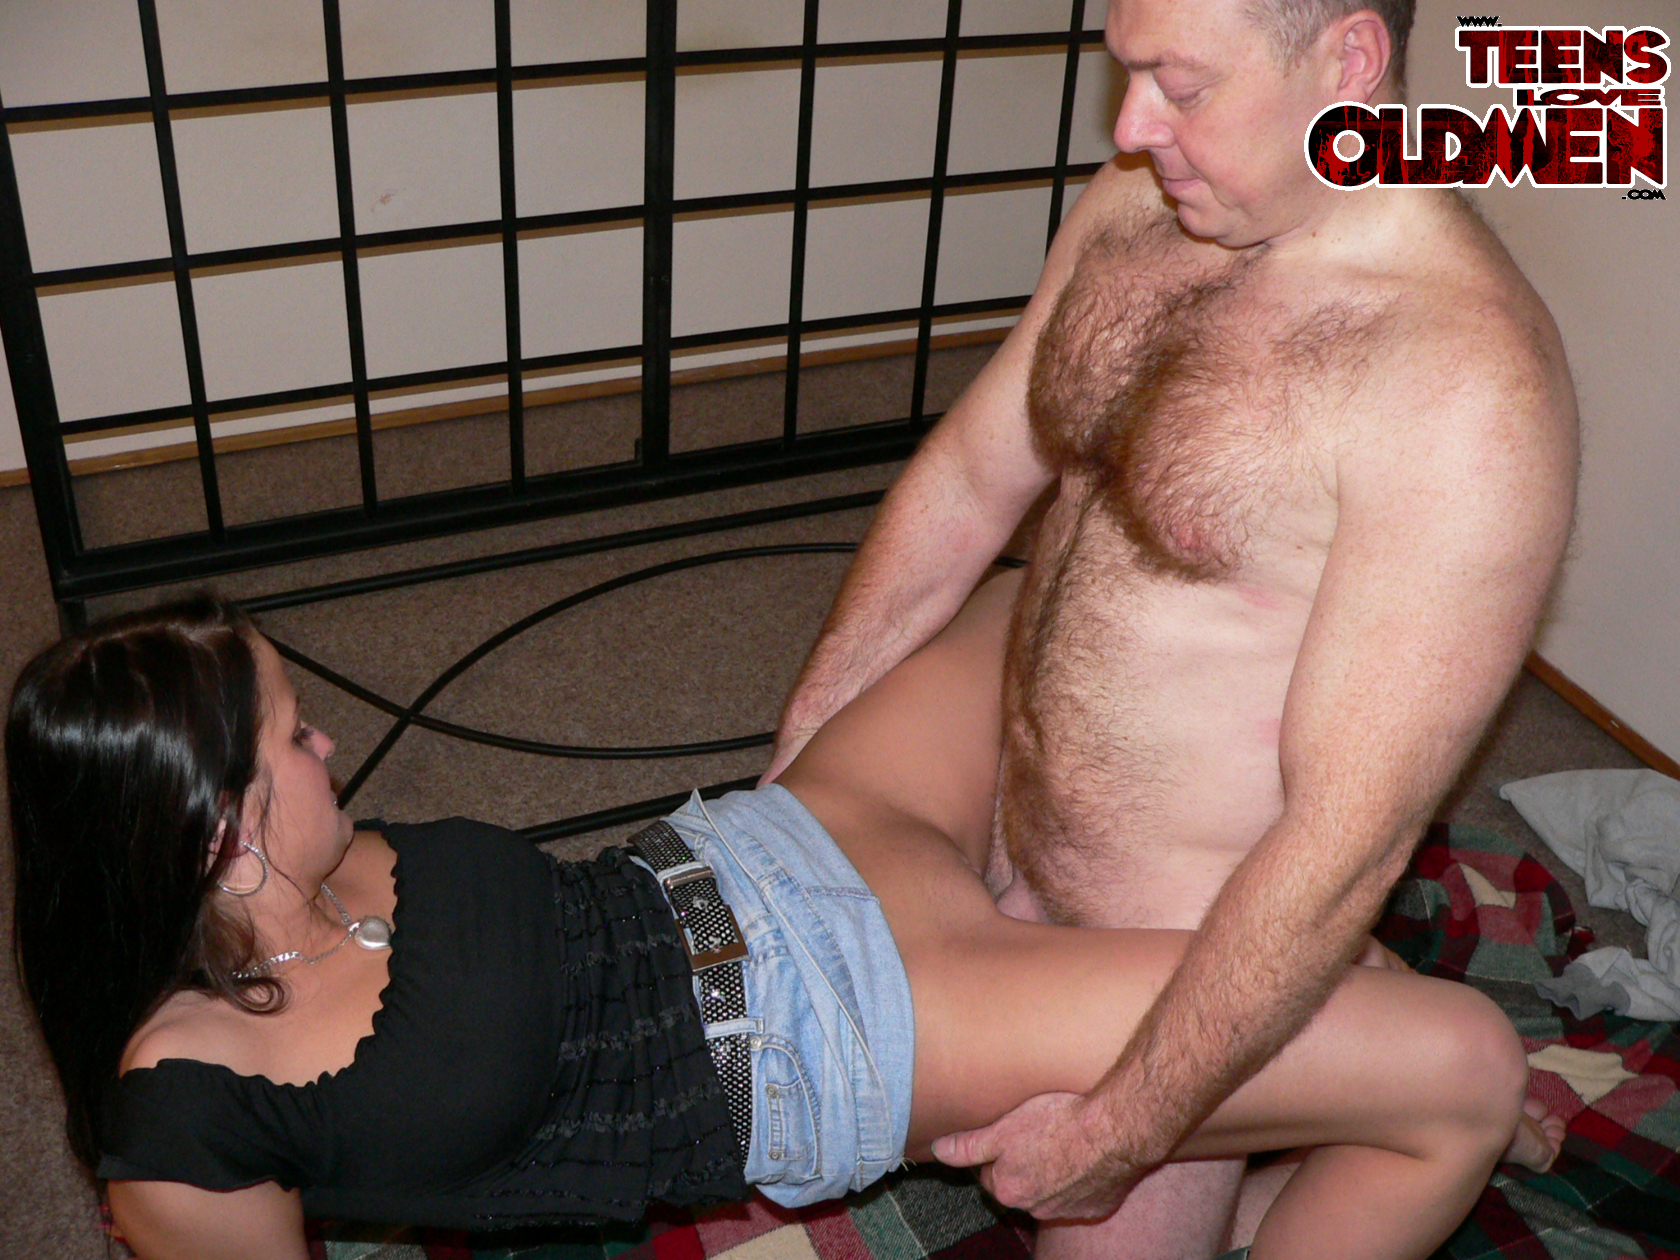 Cache Magnet Tight Teens